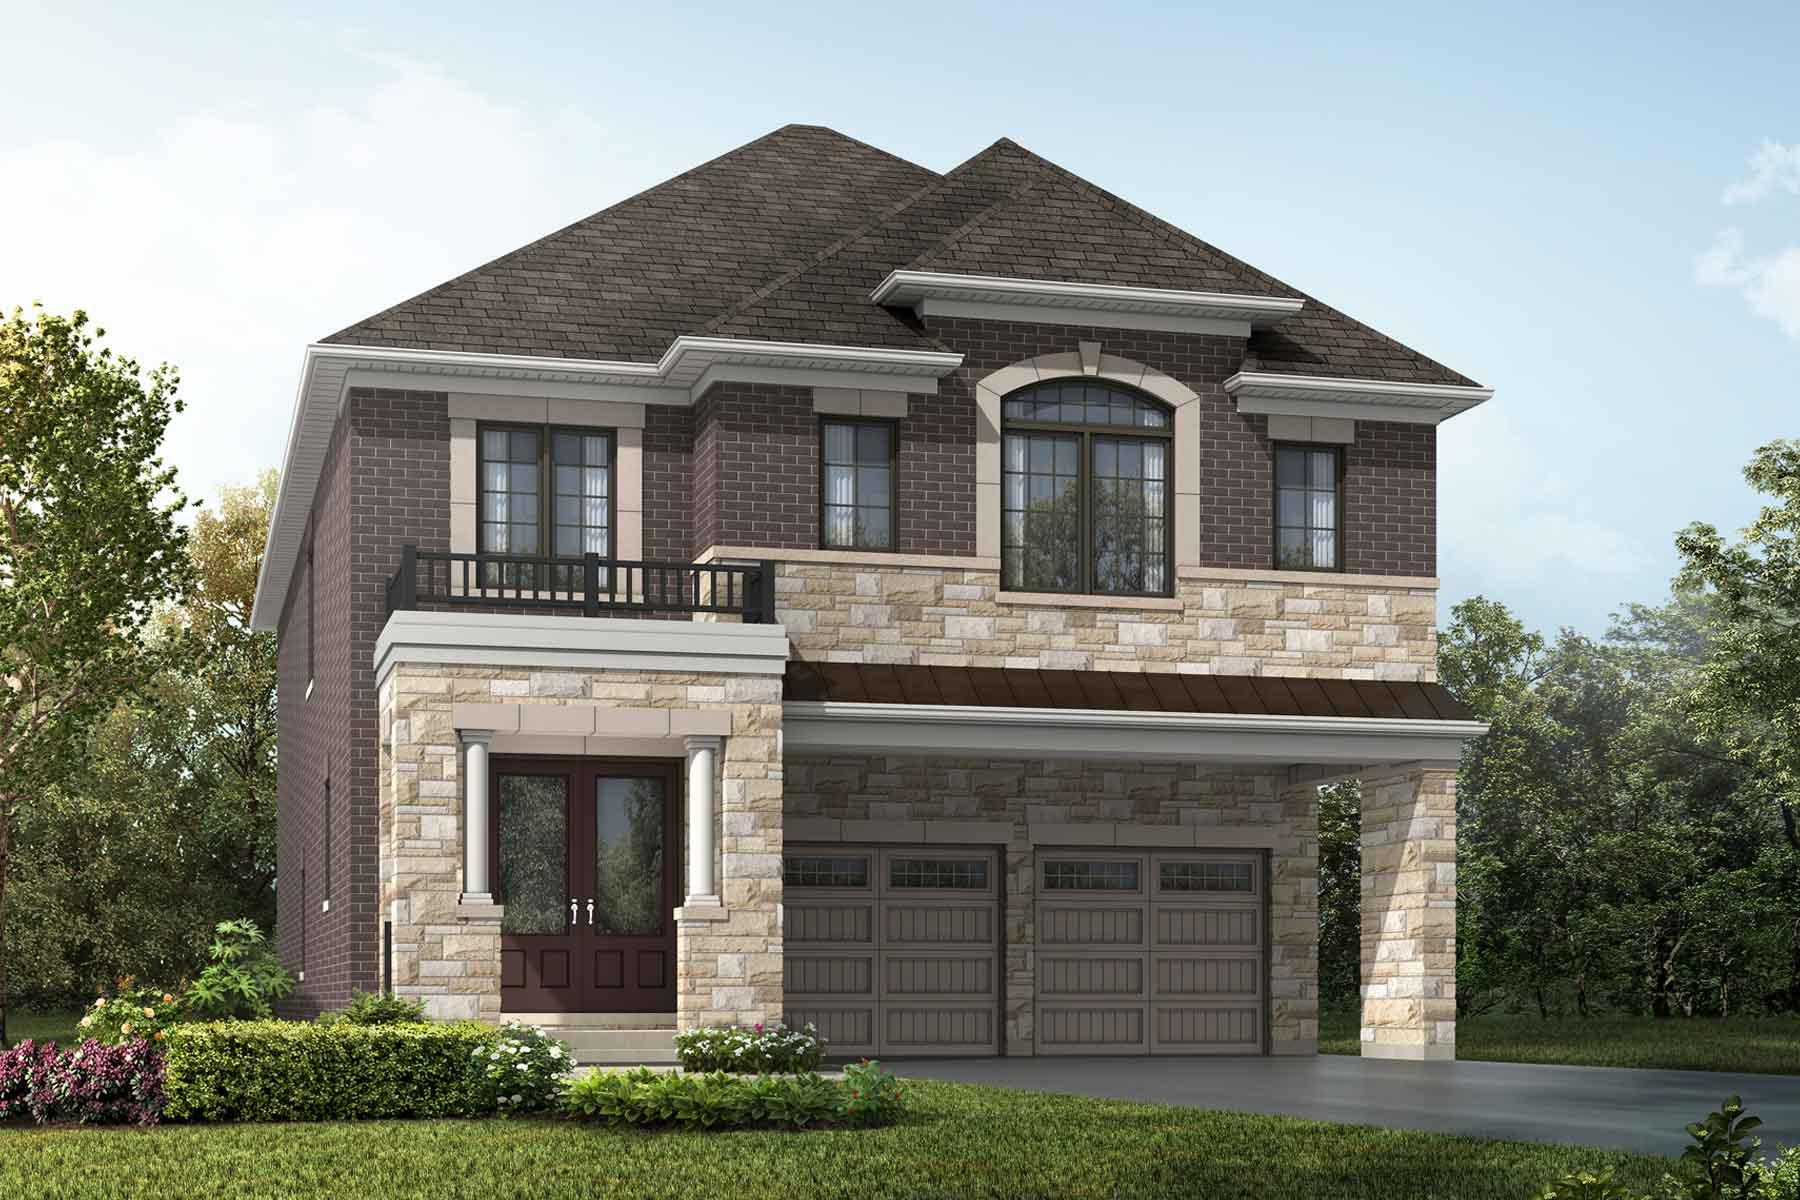 Mulberry Plan englishmanor_springwater_mulberry at Springwater in Markham Ontario by Mattamy Homes